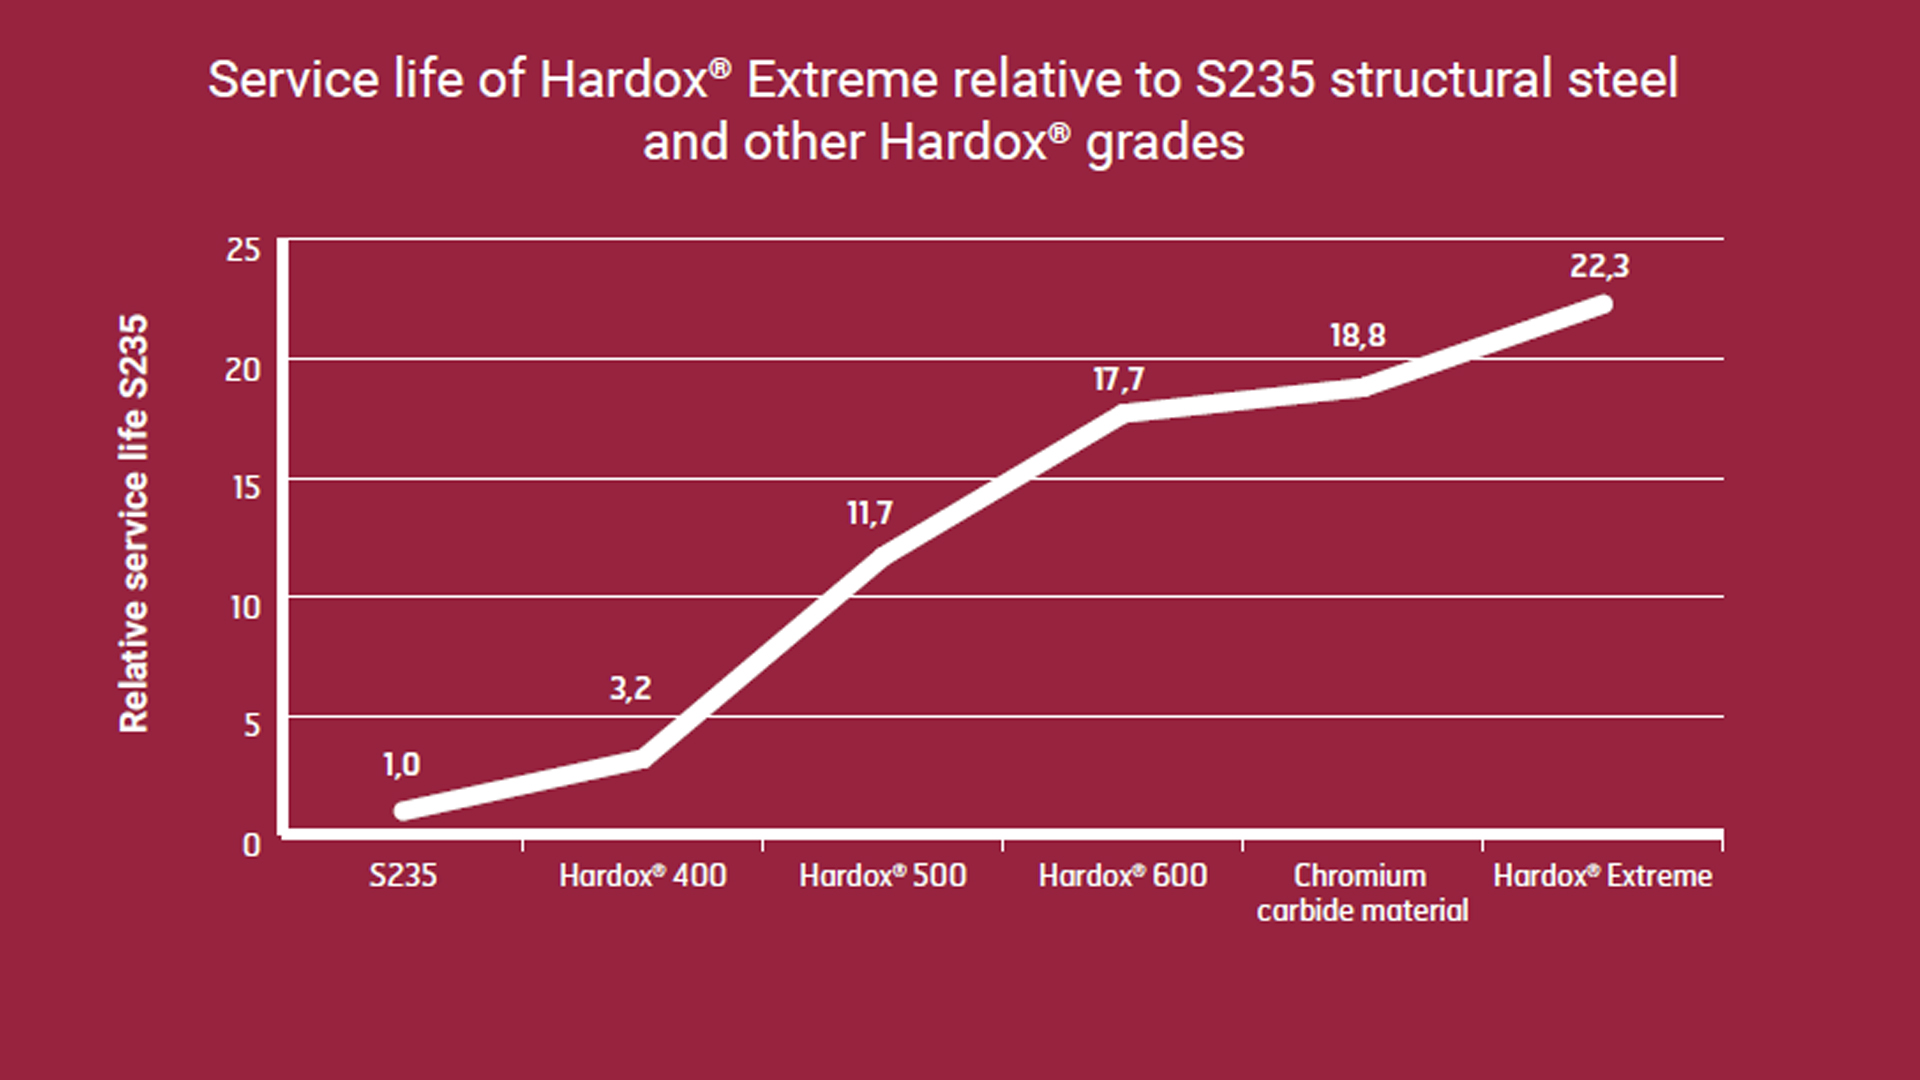 Service life of Hardox Extreme relative to structural steel and other Hardox grades